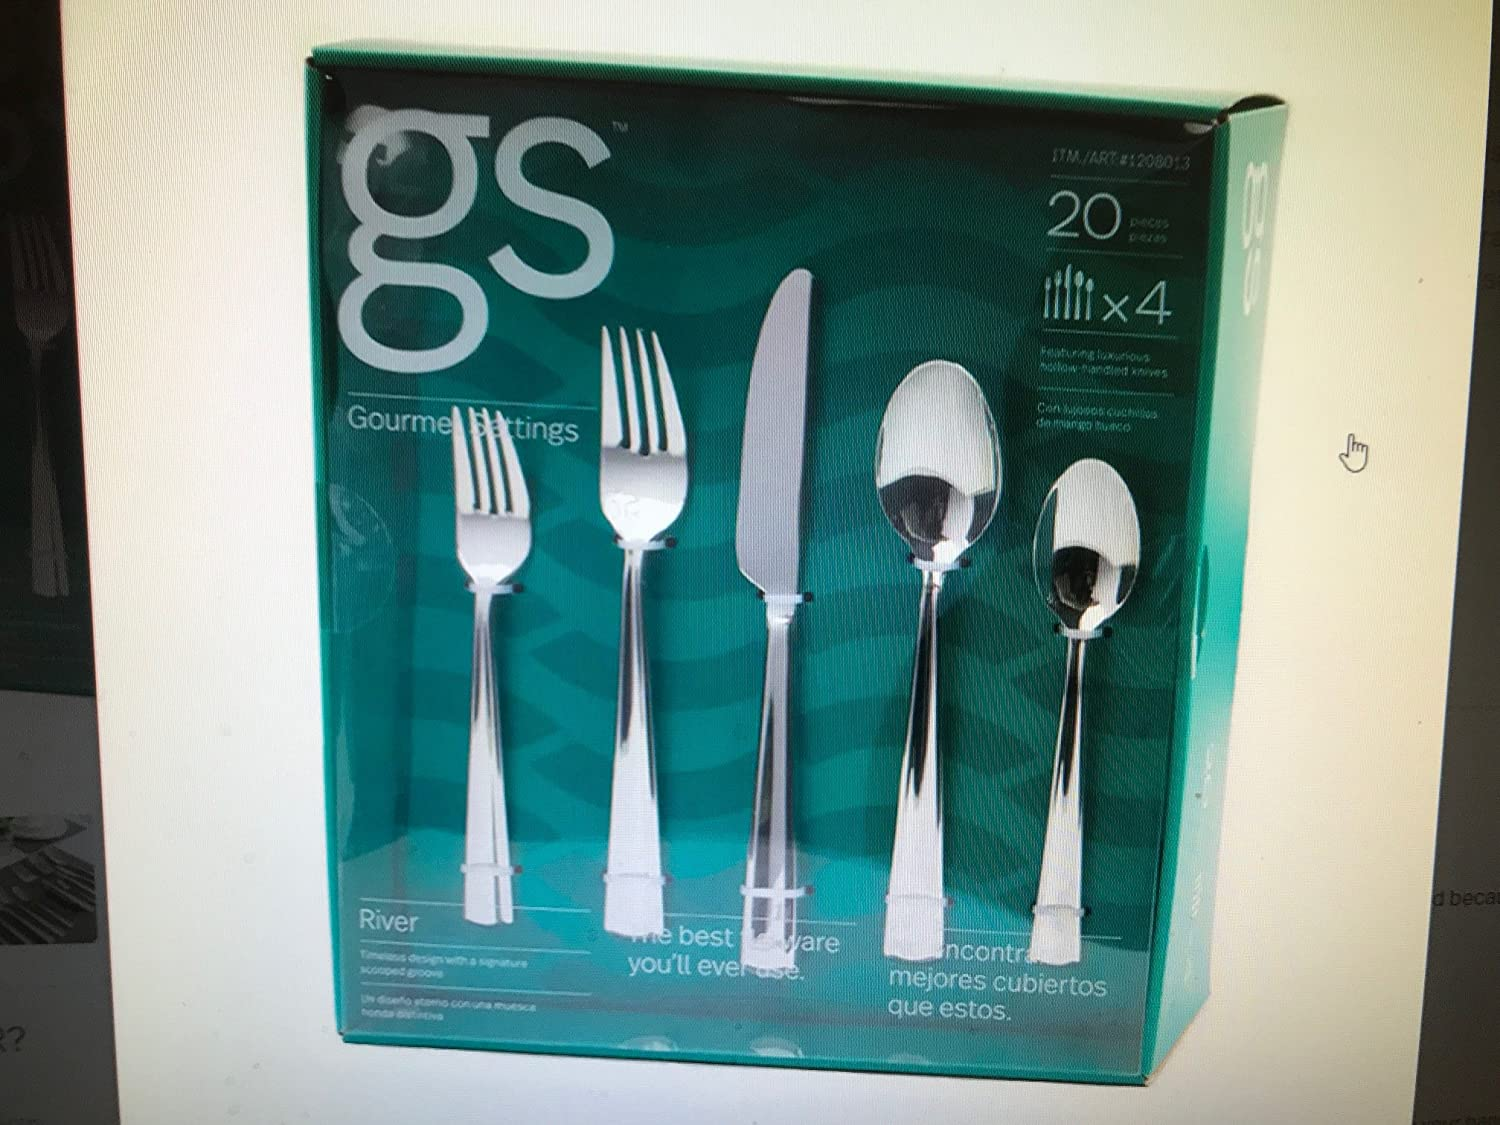 Amazon.com | Gourmet Settings GS River Fabulous Fine Flatware 20 Pieces Set: Flatware Sets